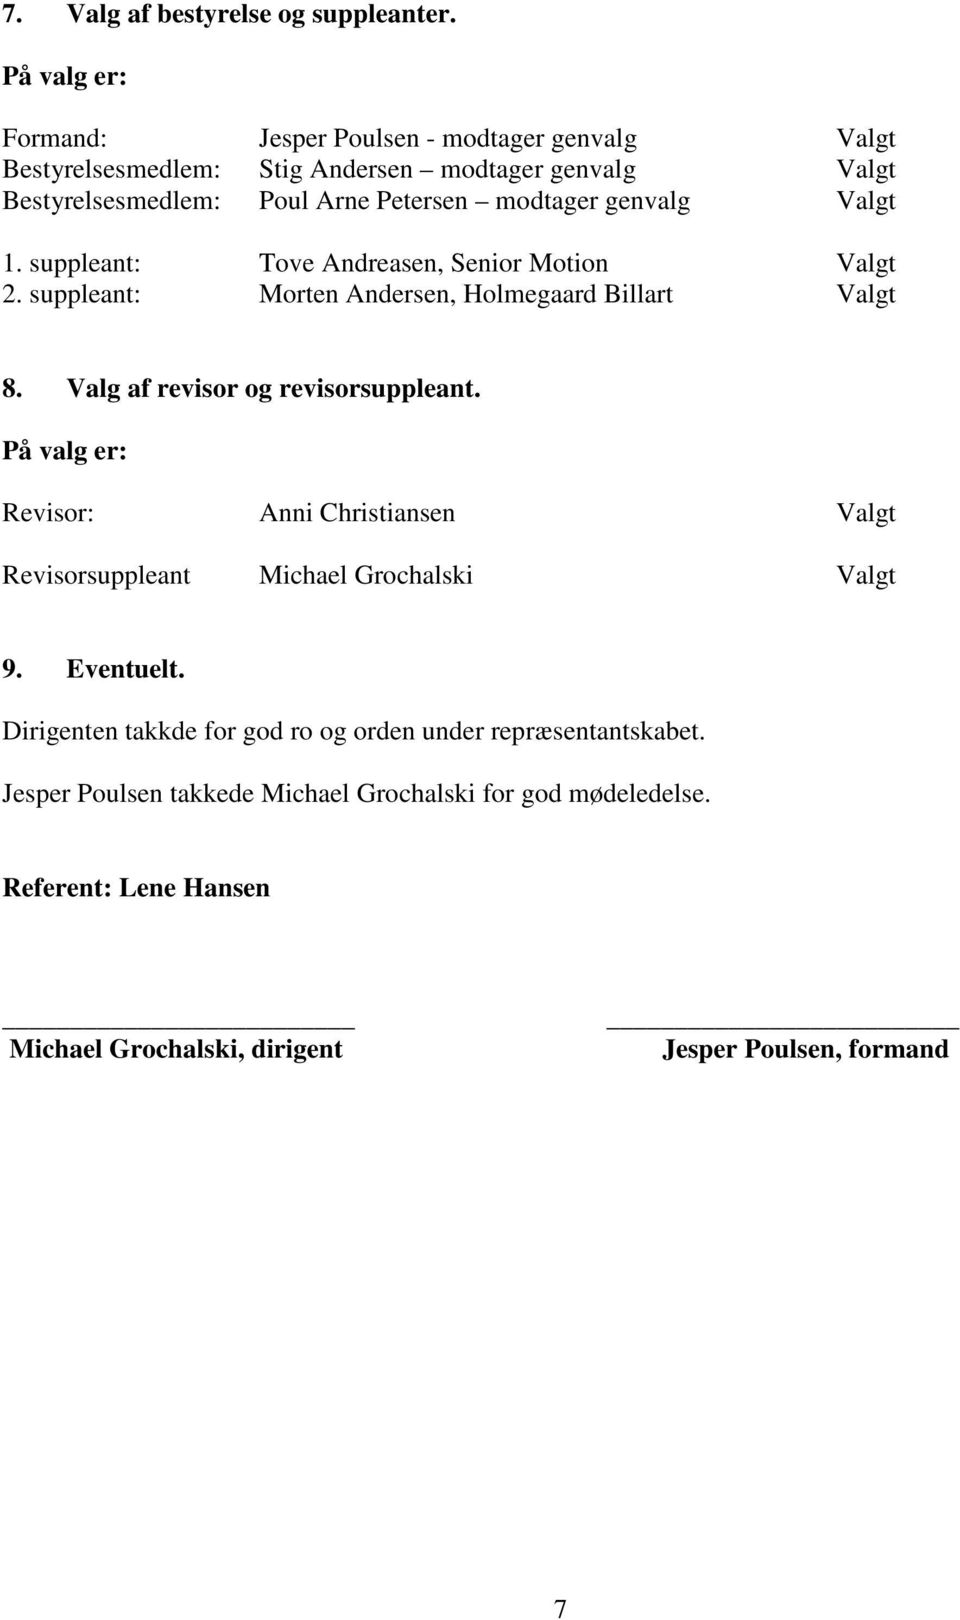 genvalg Valgt 1. suppleant: Tove Andreasen, Senior Motion Valgt 2. suppleant: Morten Andersen, Holmegaard Billart Valgt 8. Valg af revisor og revisorsuppleant.